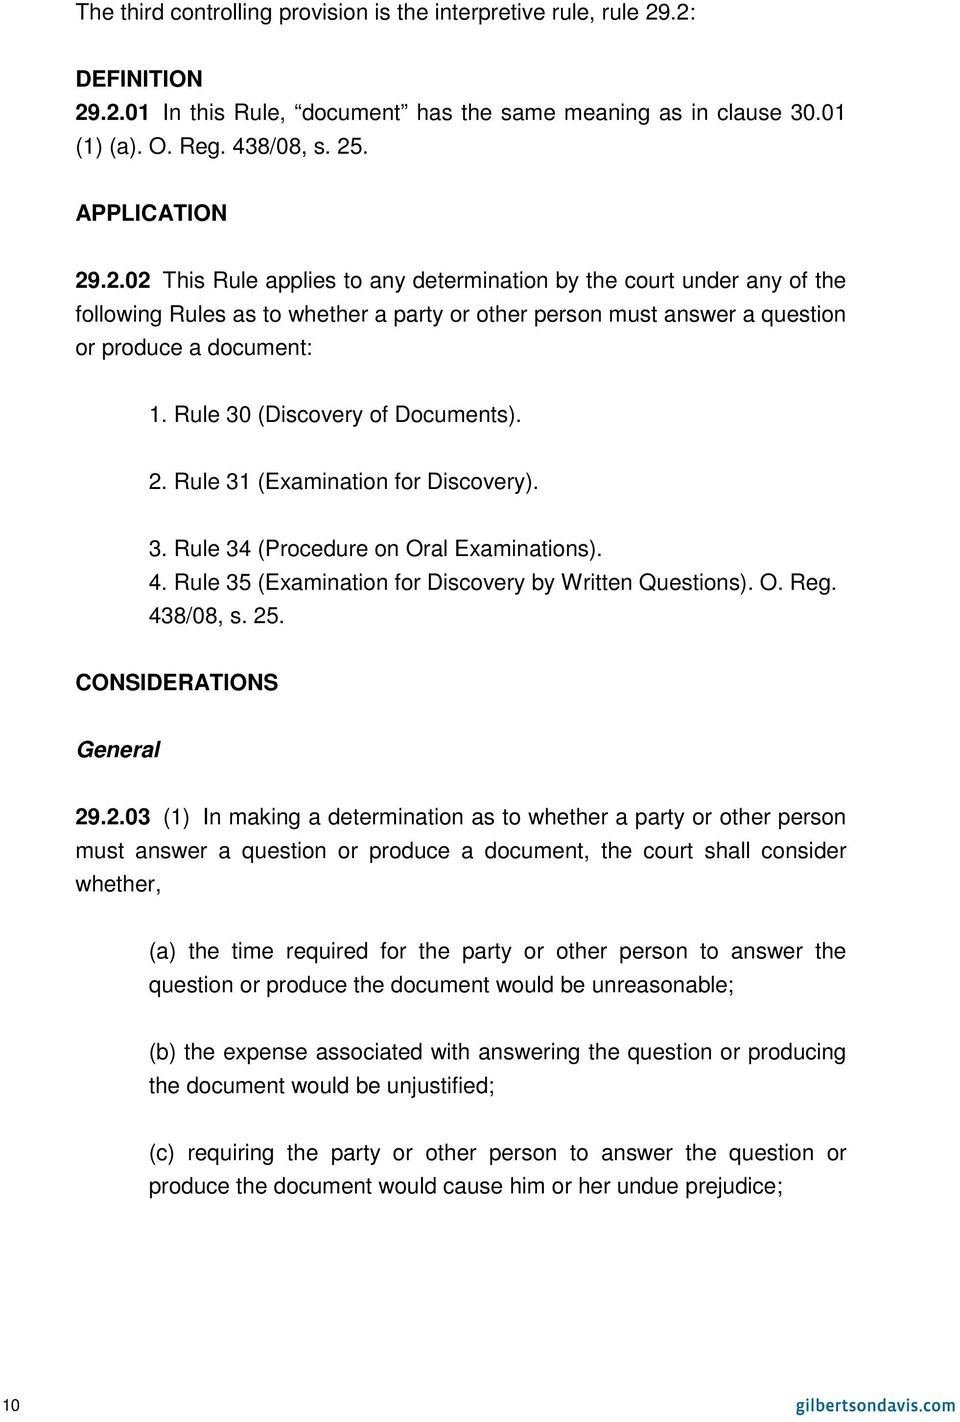 Rule 30 (Discovery of Documents). 2. Rule 31 (Examination for Discovery). 3. Rule 34 (Procedure on Oral Examinations). 4. Rule 35 (Examination for Discovery by Written Questions). O. Reg. 438/08, s.